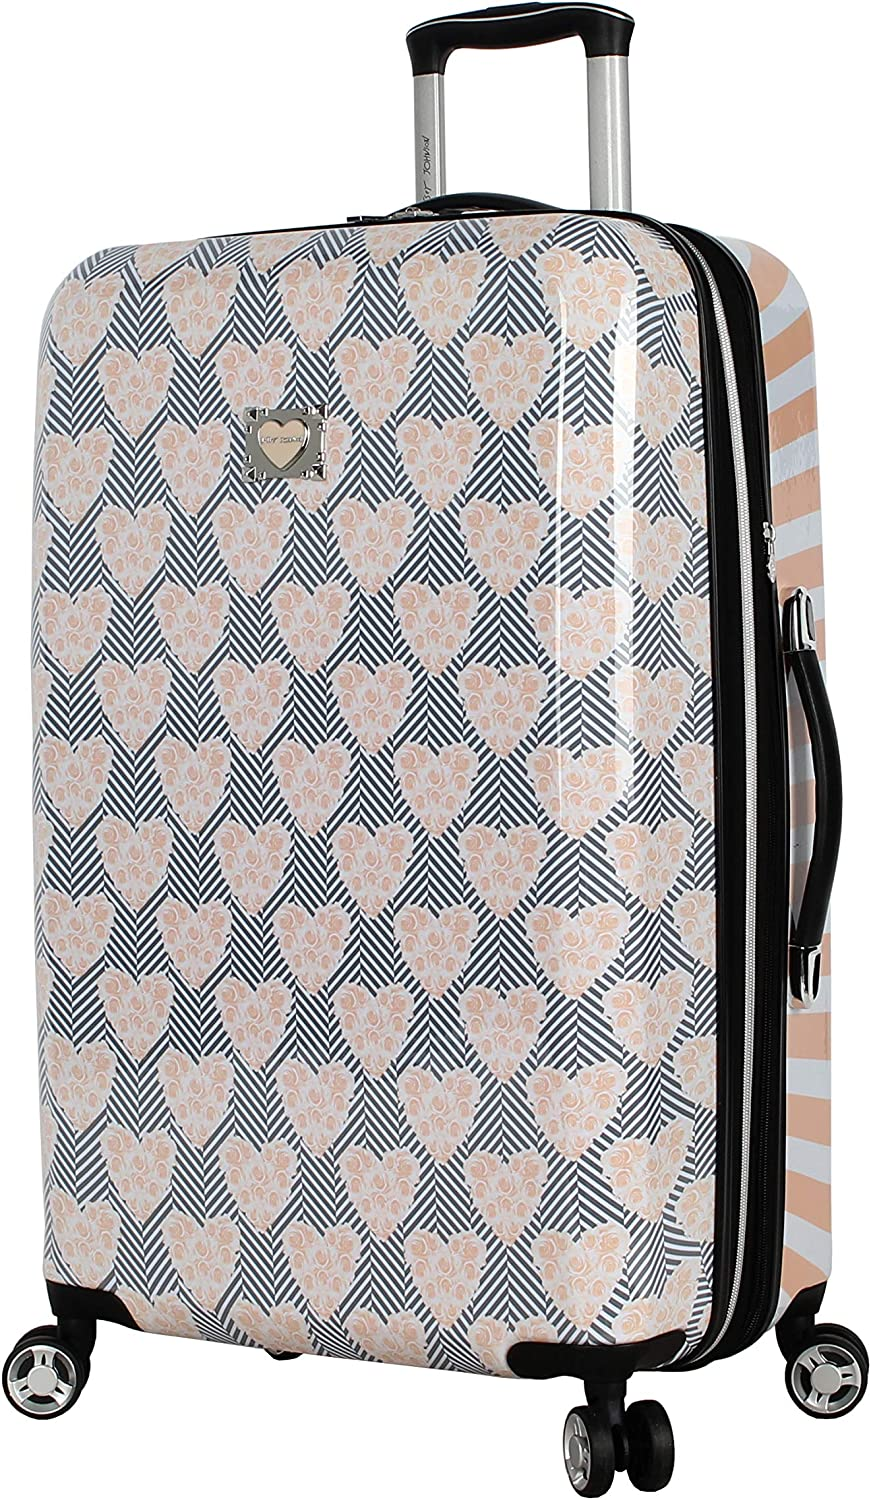 Betsey Johnson 26 Inch Checked Luggage Collection - Expandable Scratch Resistant (ABS + PC) Hardside Suitcase - Designer Lightweight Bag with 8-Rolling Spinner Wheels (Chevron Hearts)